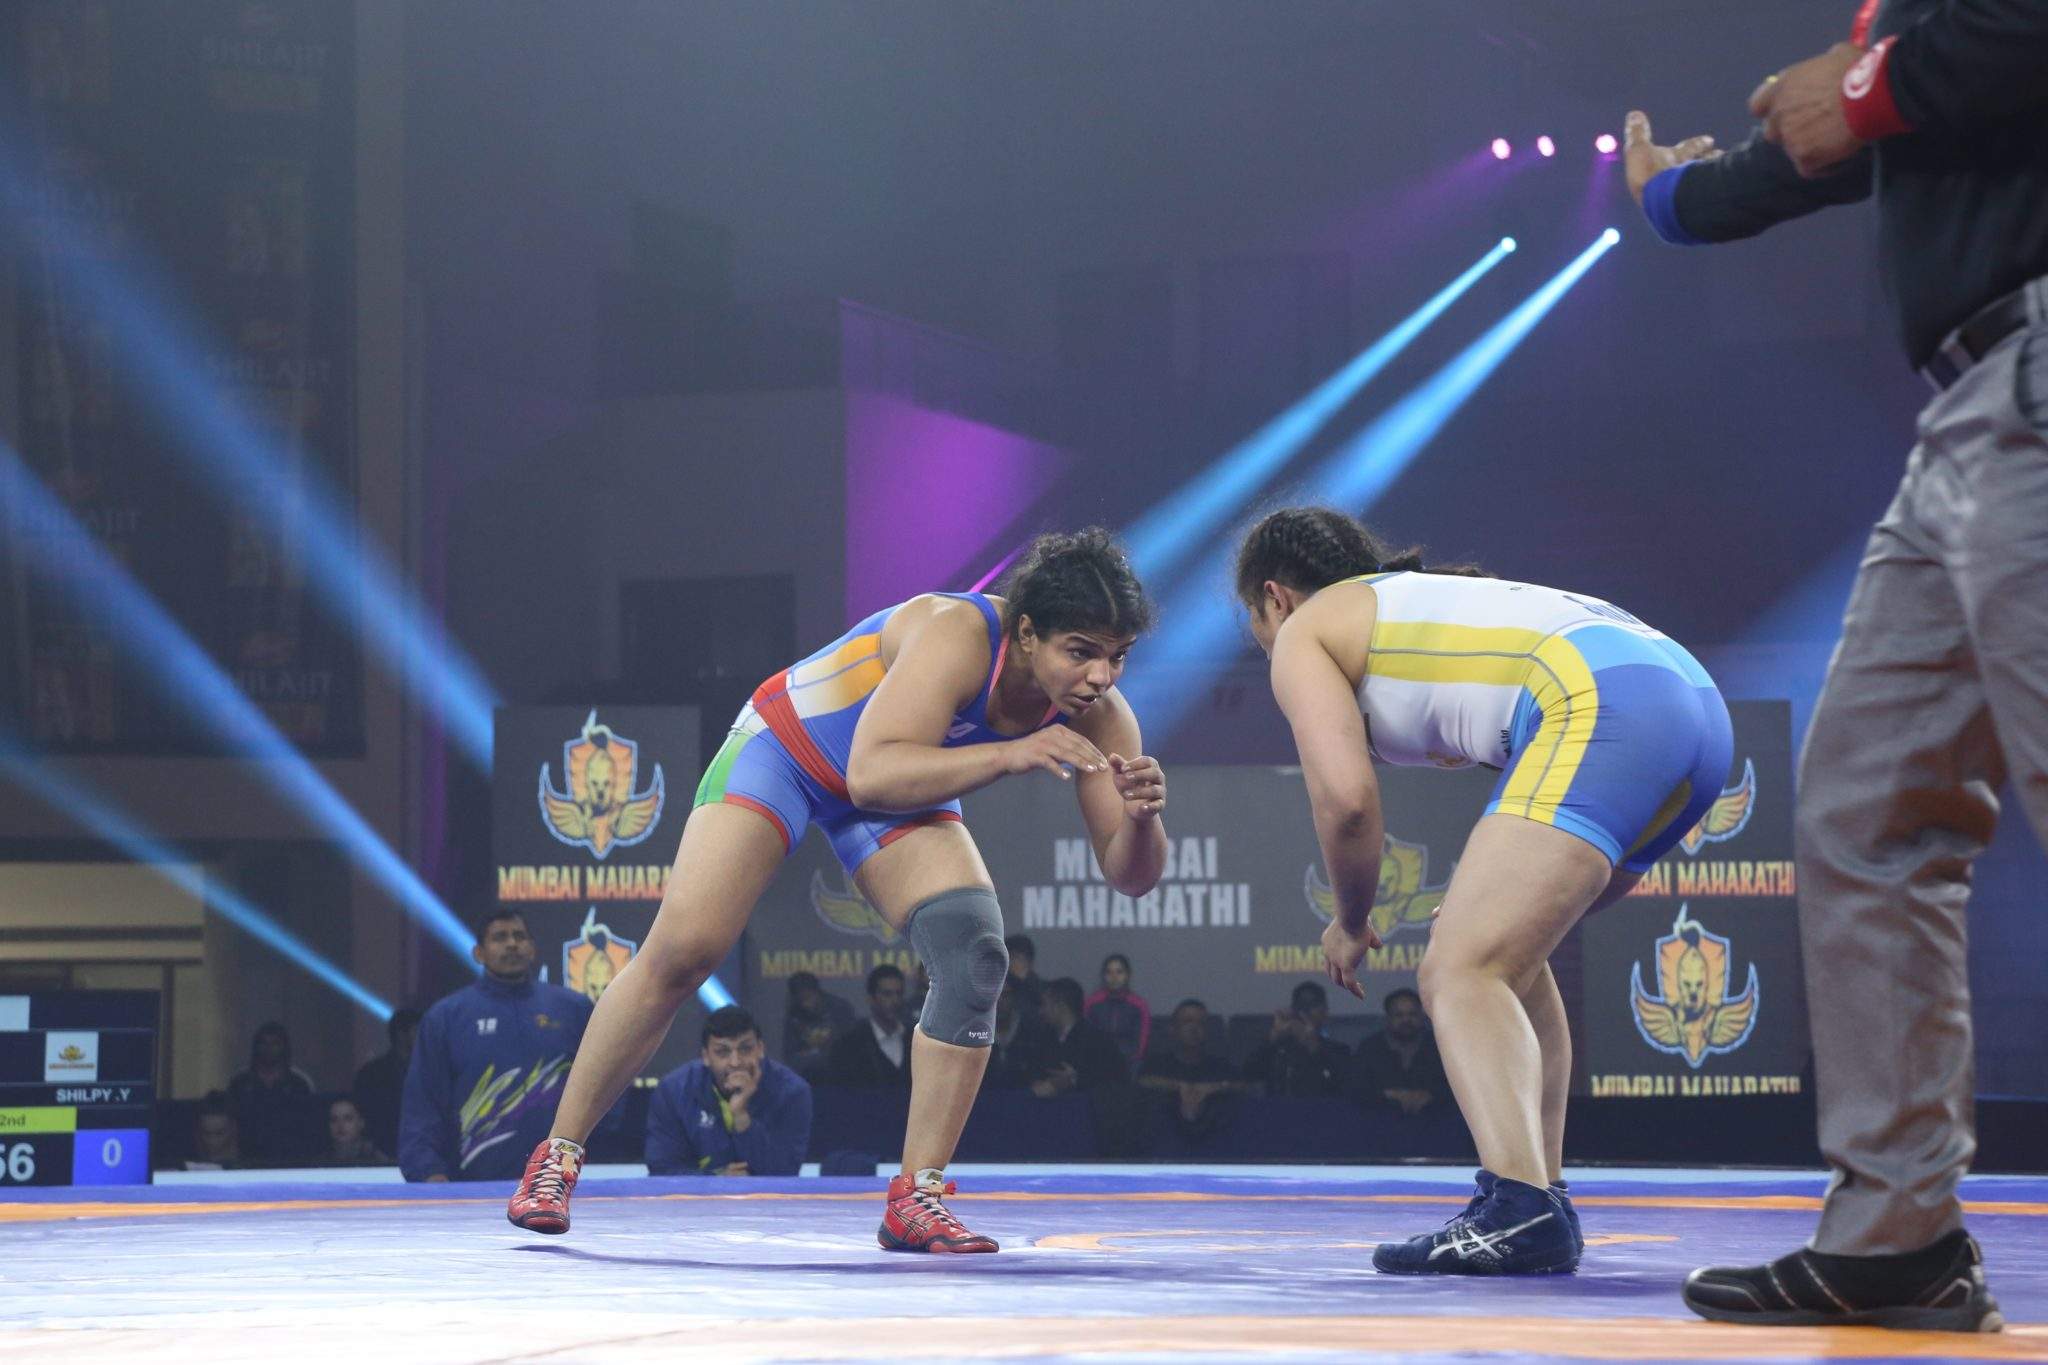 2016 Rio Olympic Bronze medallist Sakshi Malik helped Delhi Sultans cruise through the semi-finals with a win against Shilpi Yadav of Mumbai Maharathi